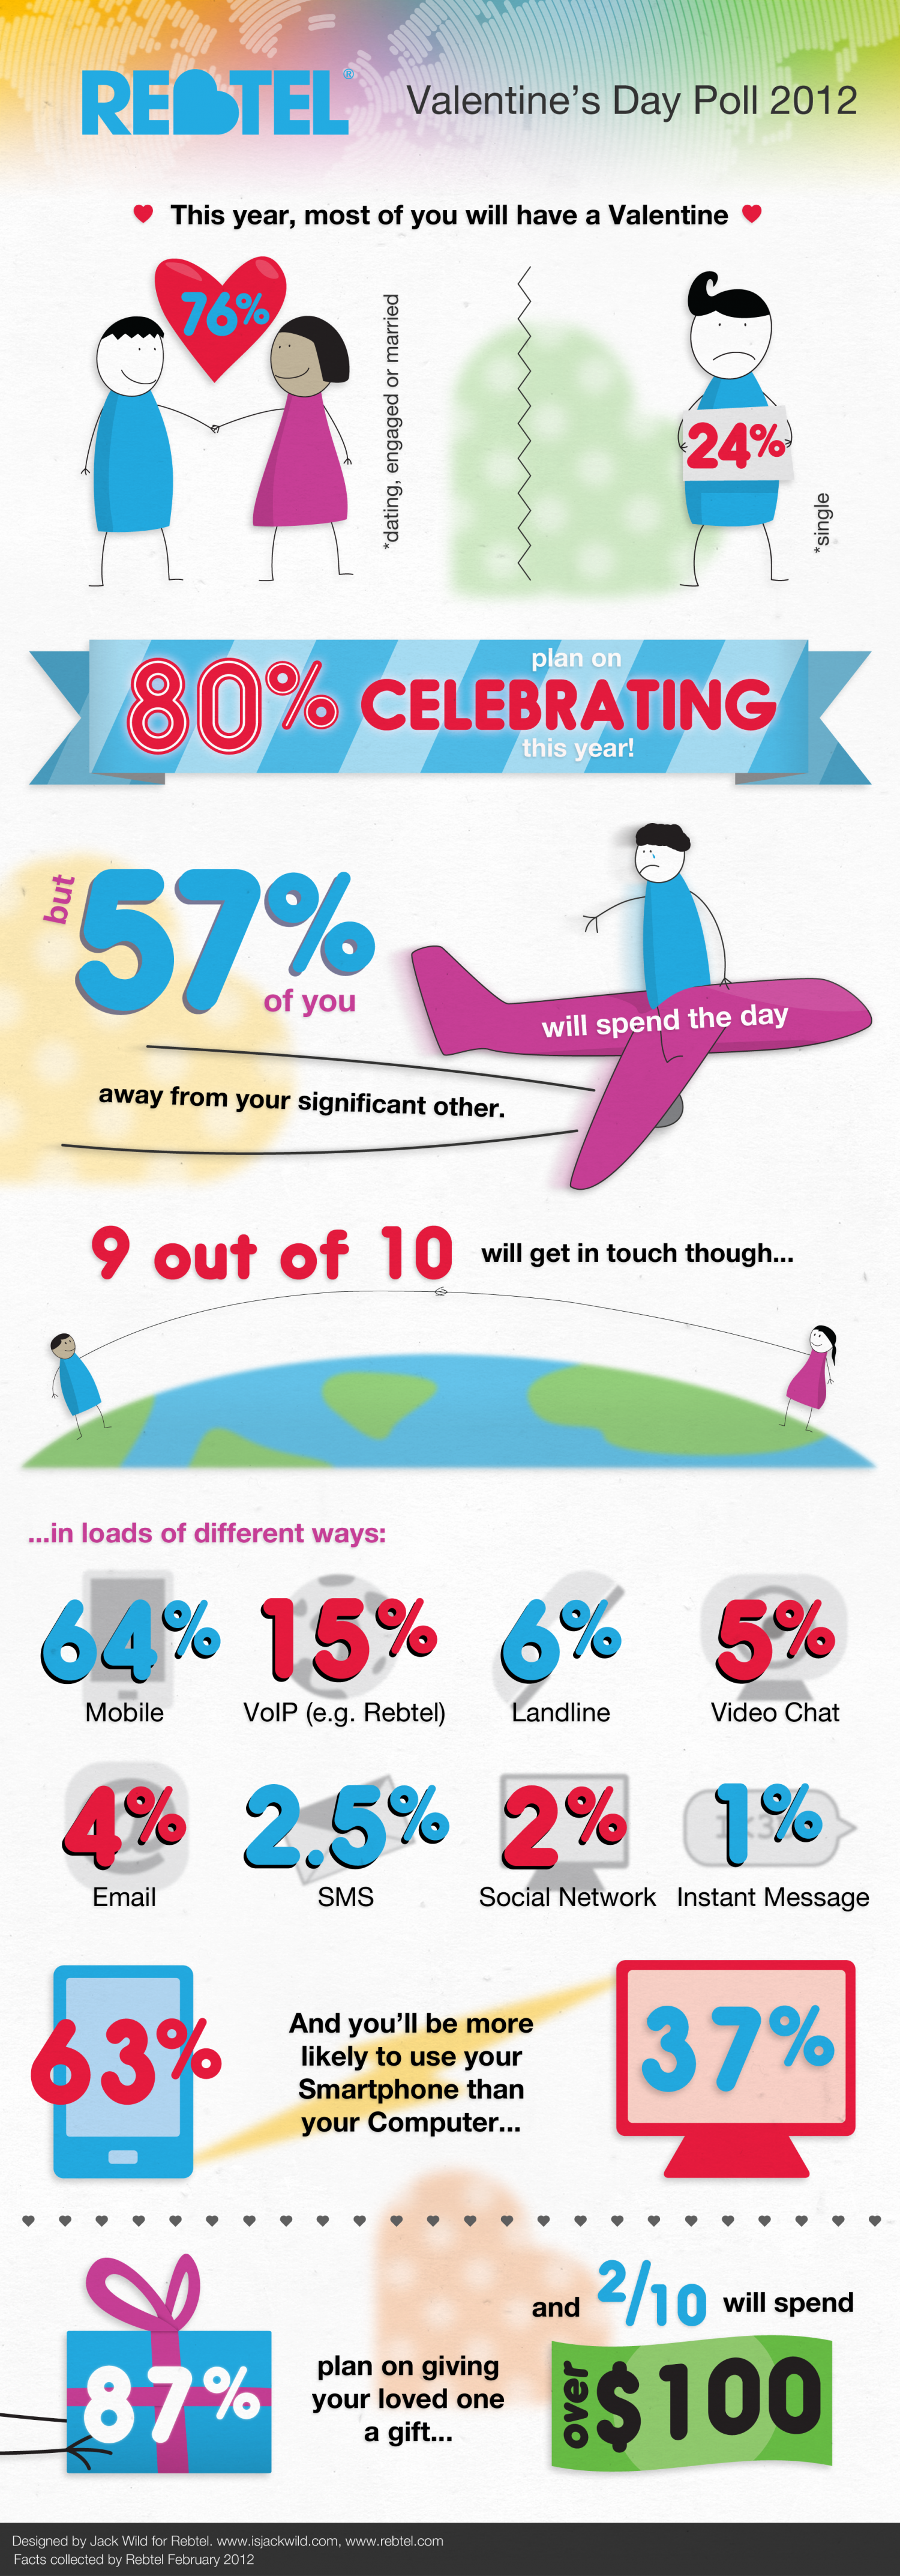 Rebtel Valentines Day Poll 2012 Infographic